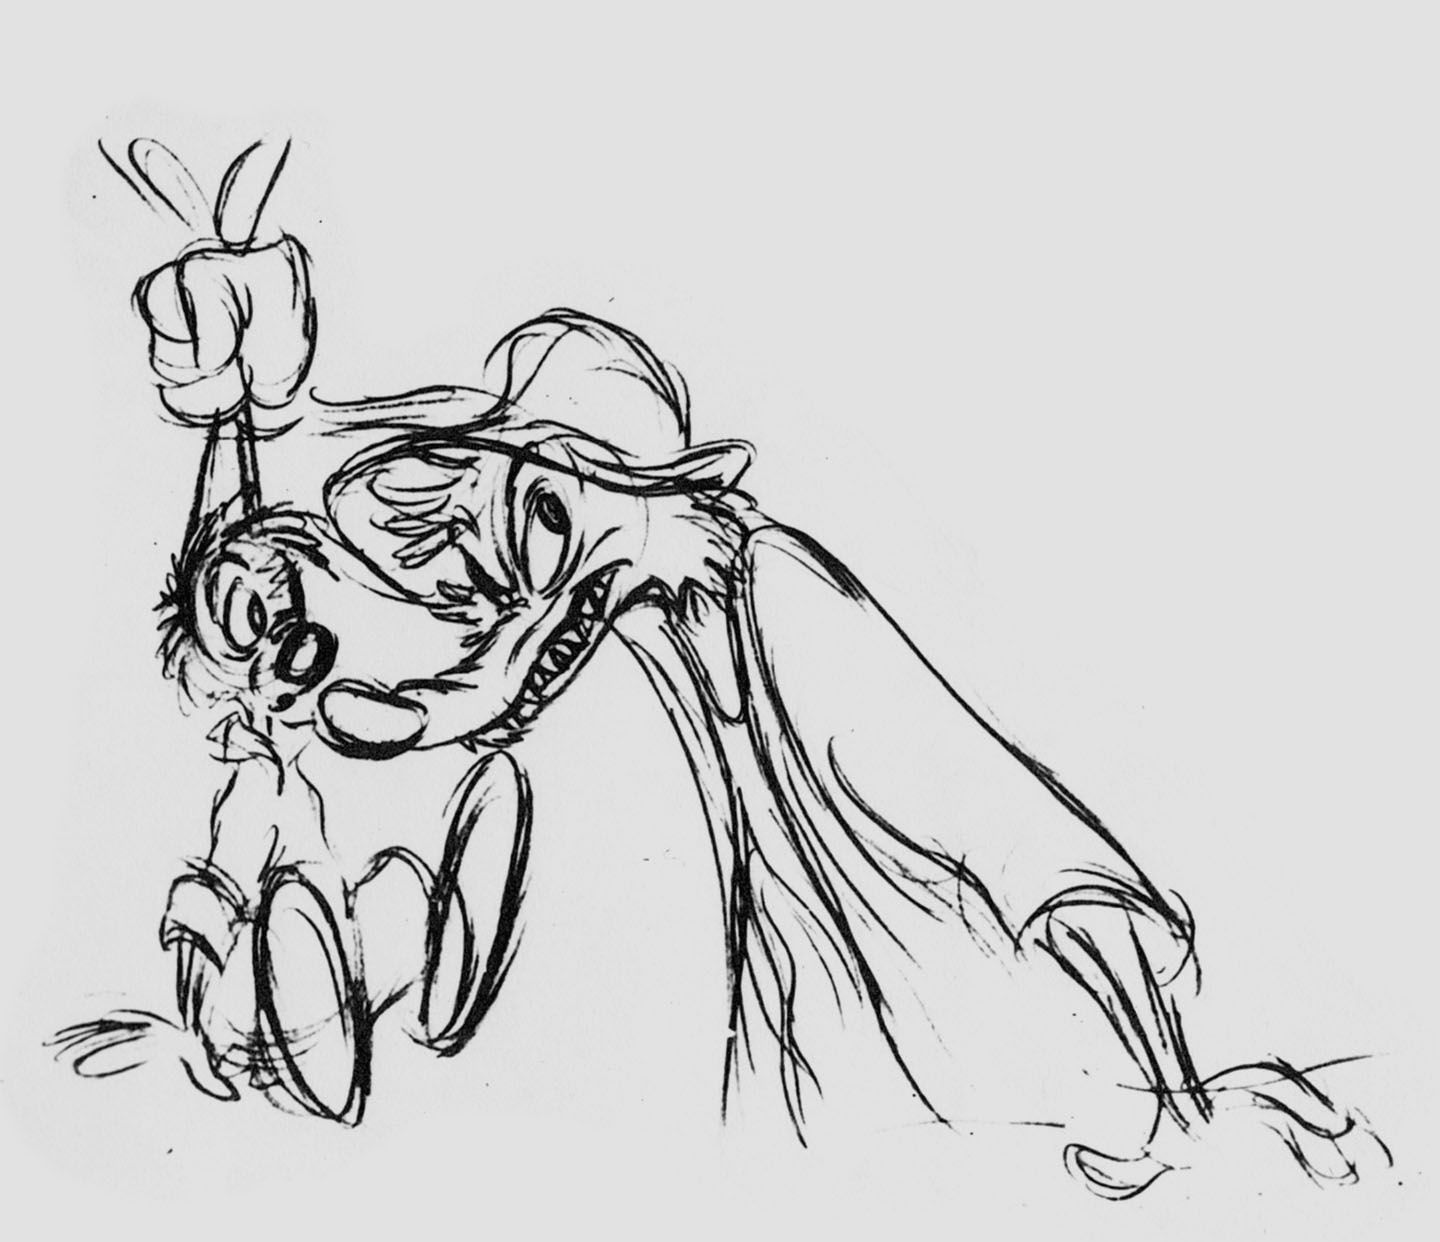 Urb 4 Jpg 1440 1242 Animated Drawings Animation Sketches Disney Concept Art